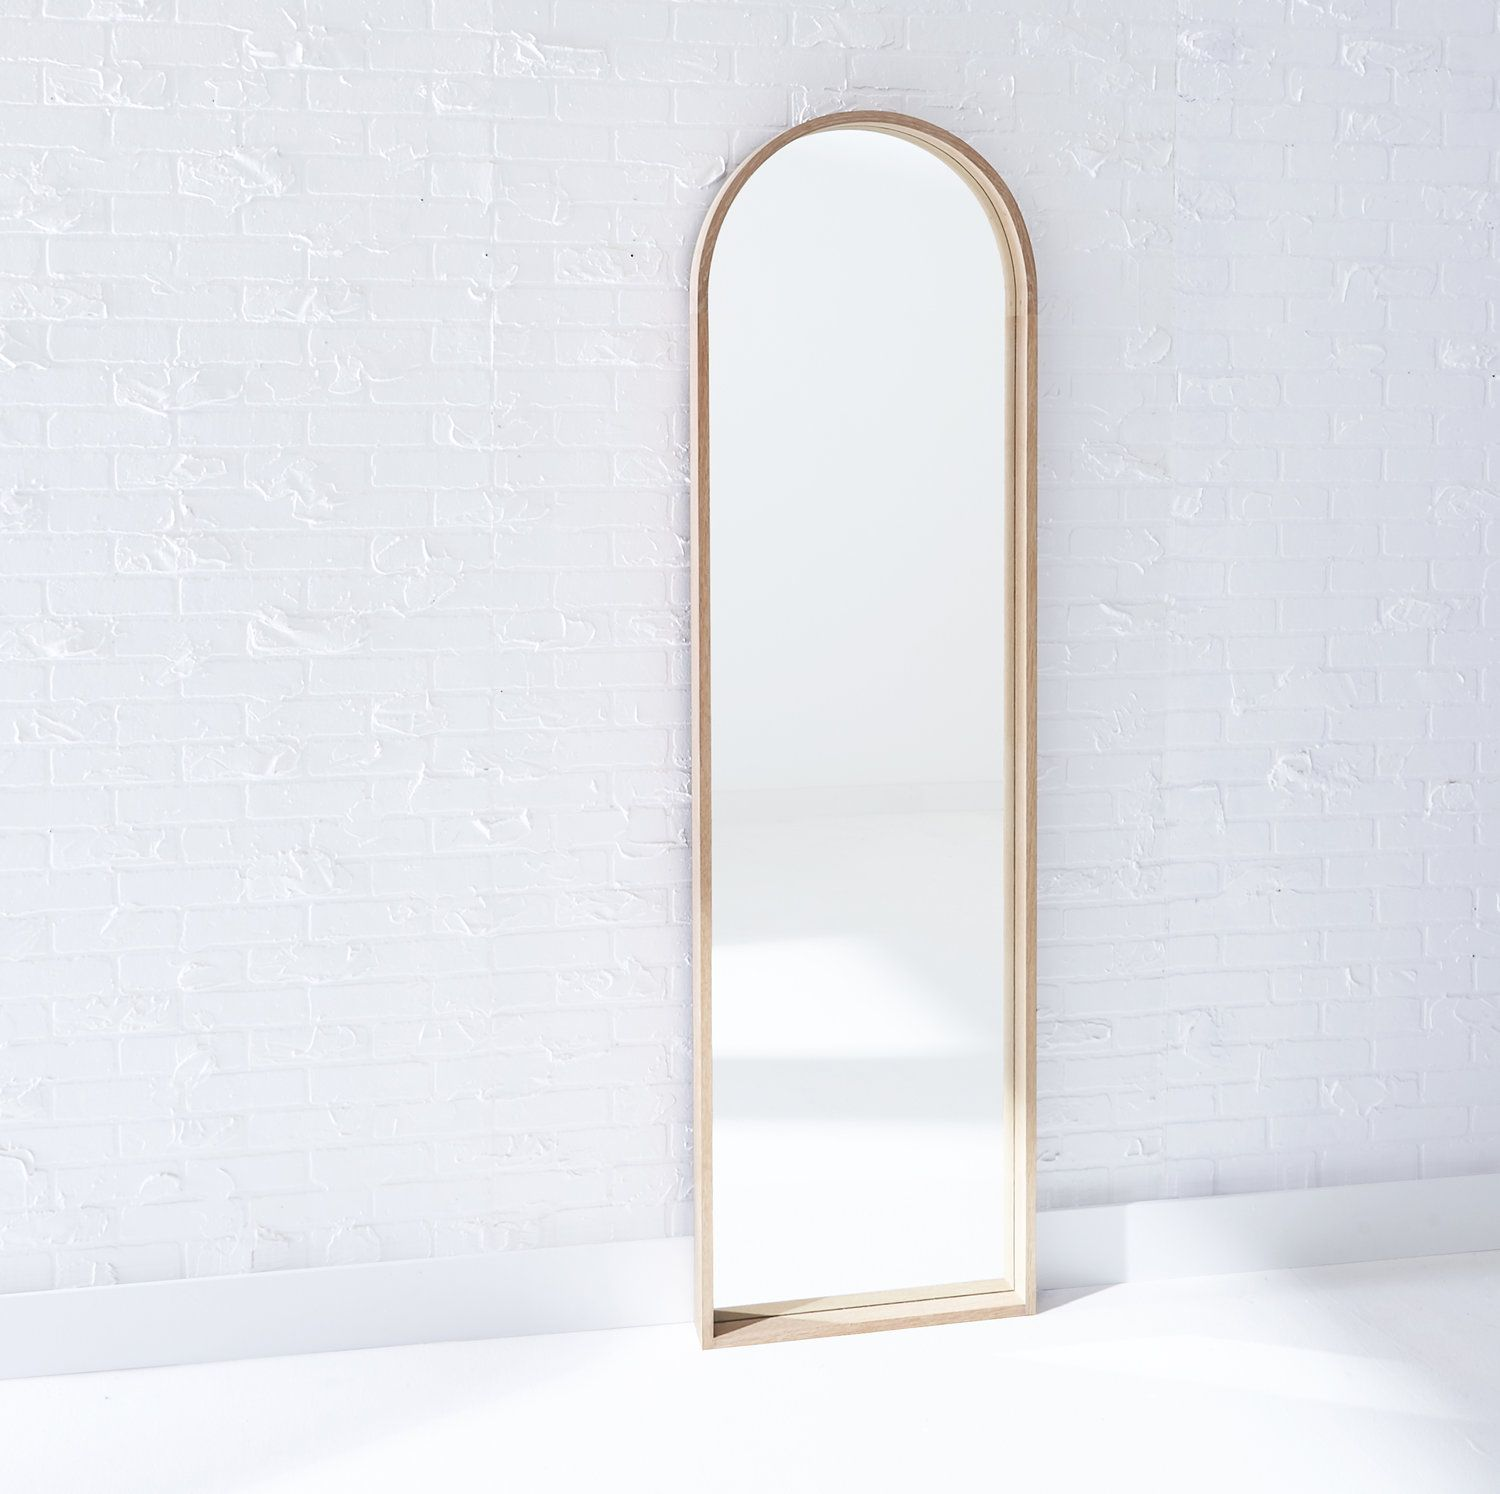 Pin By Sbd Projects On Furniture Mirror White Oak Modern Floor Mirrors